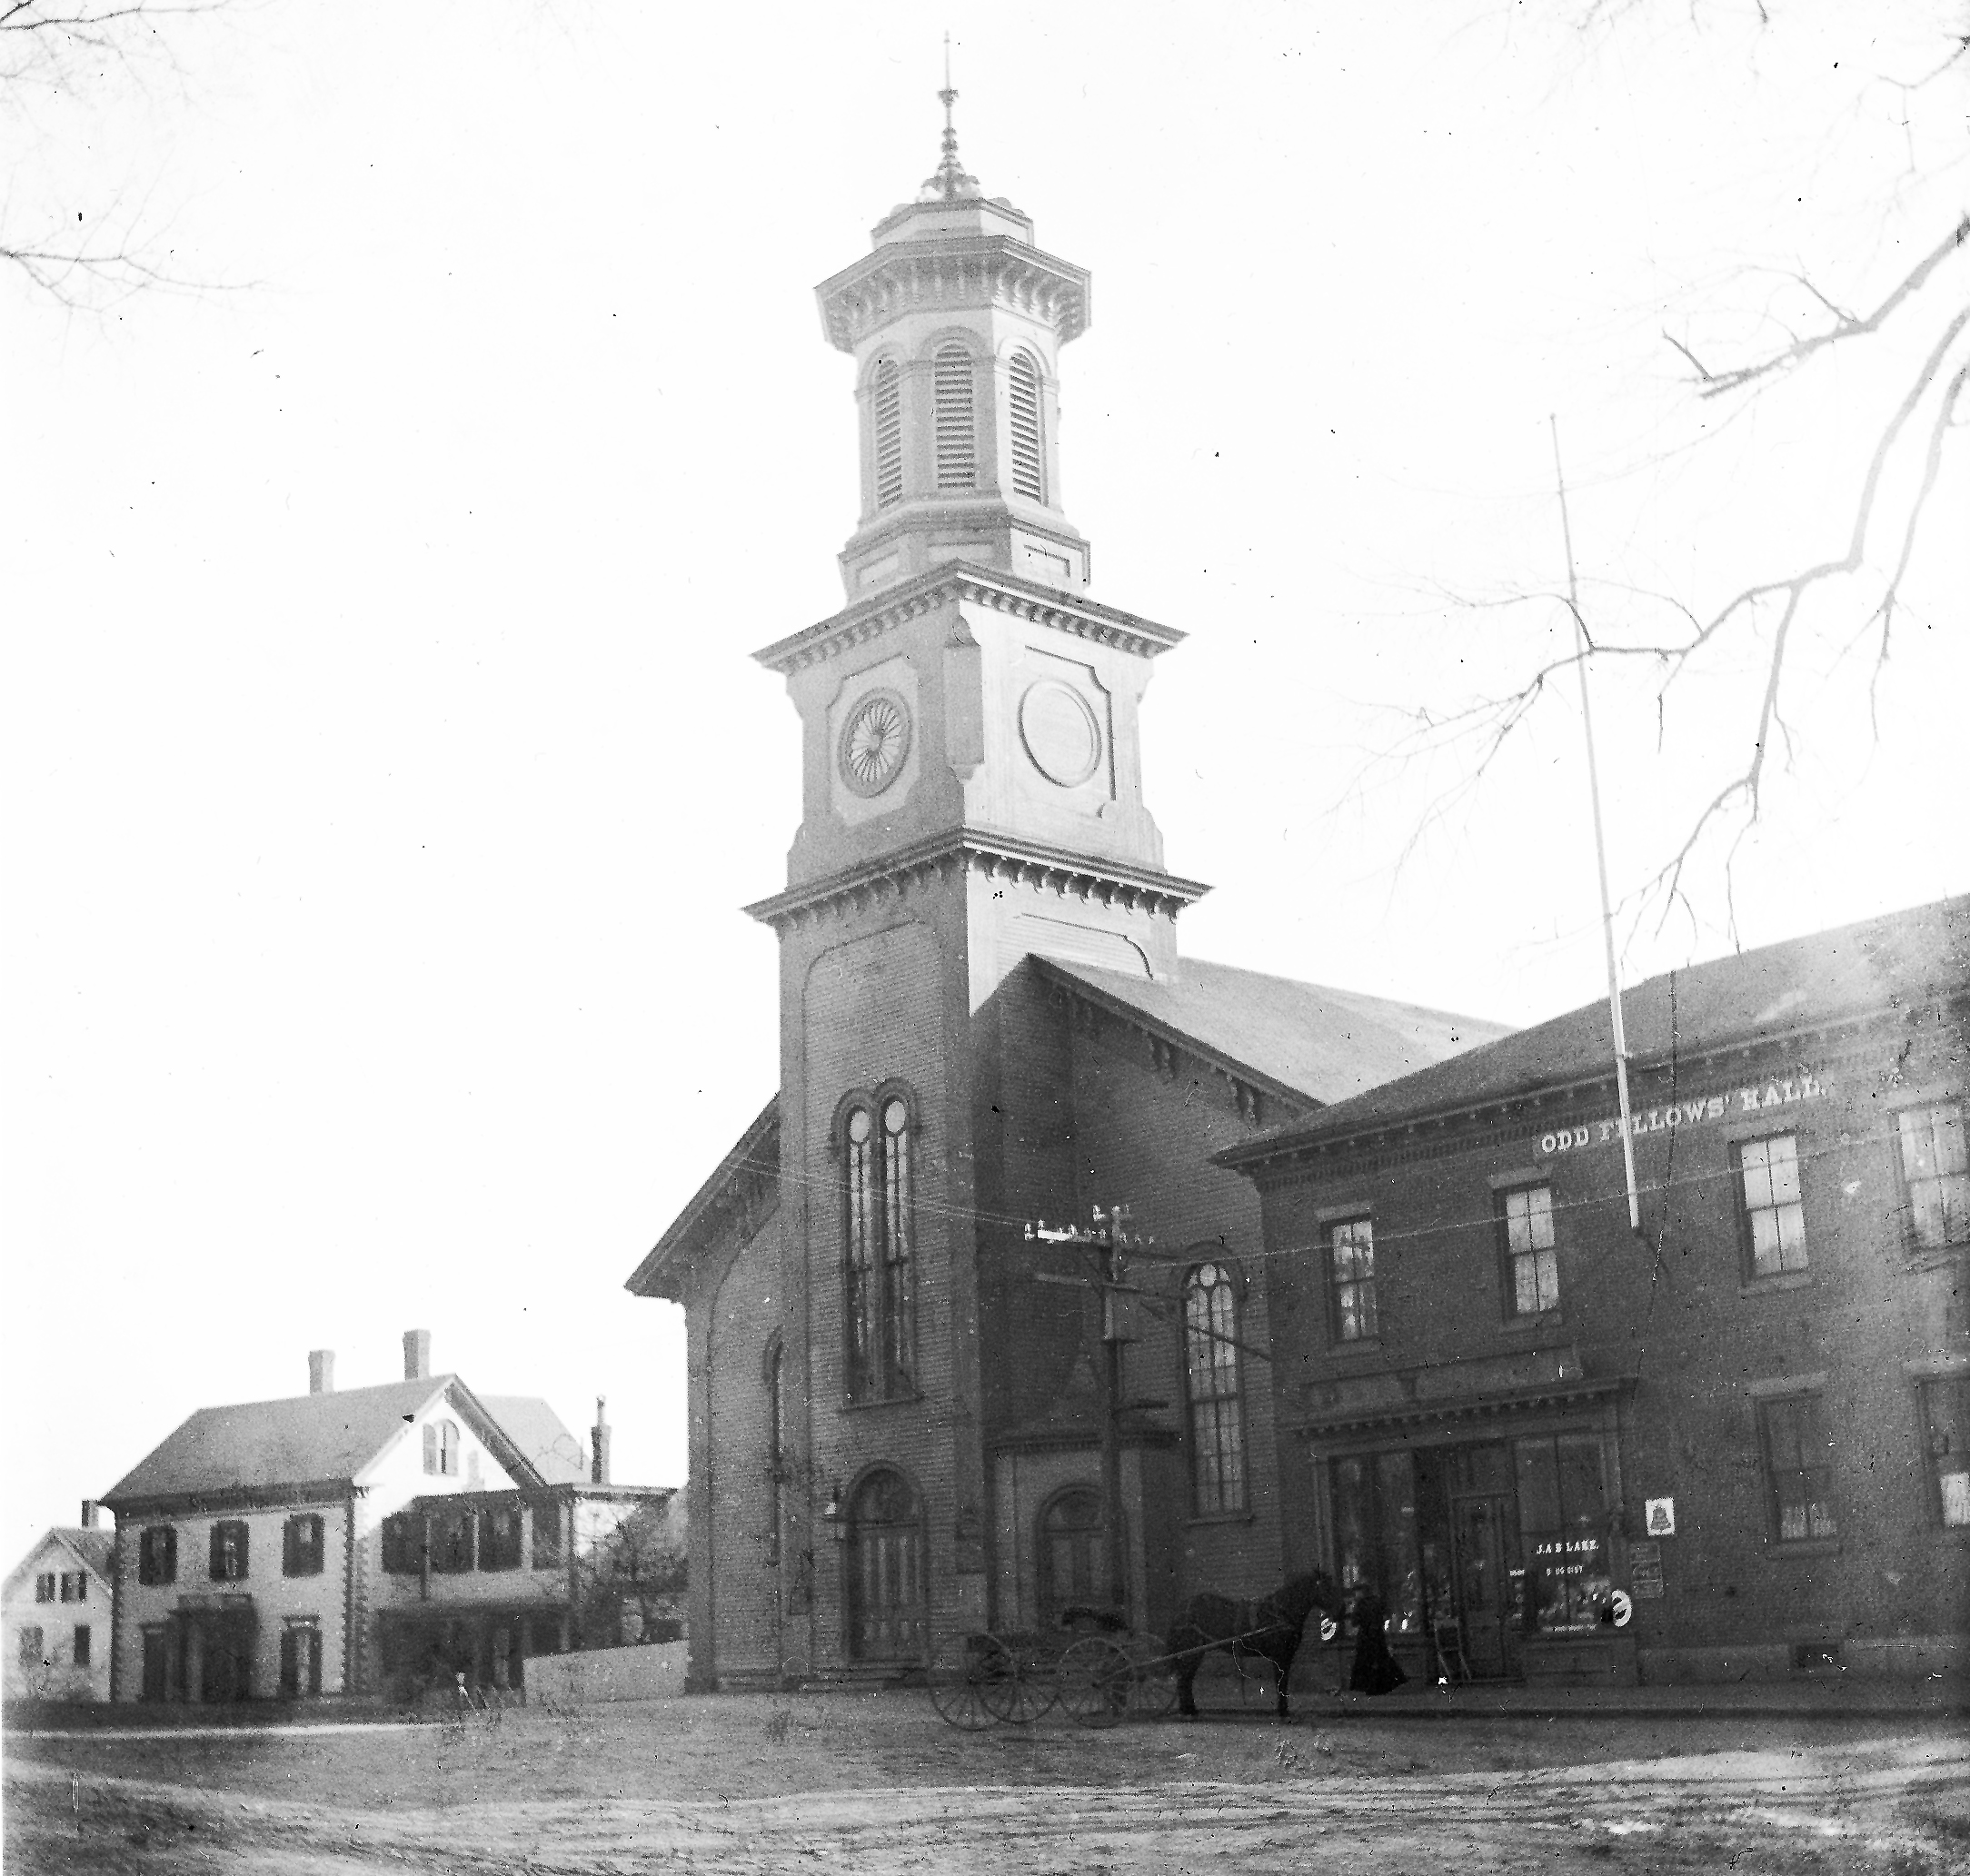 Ipswich Methodist Church, late 19th Century